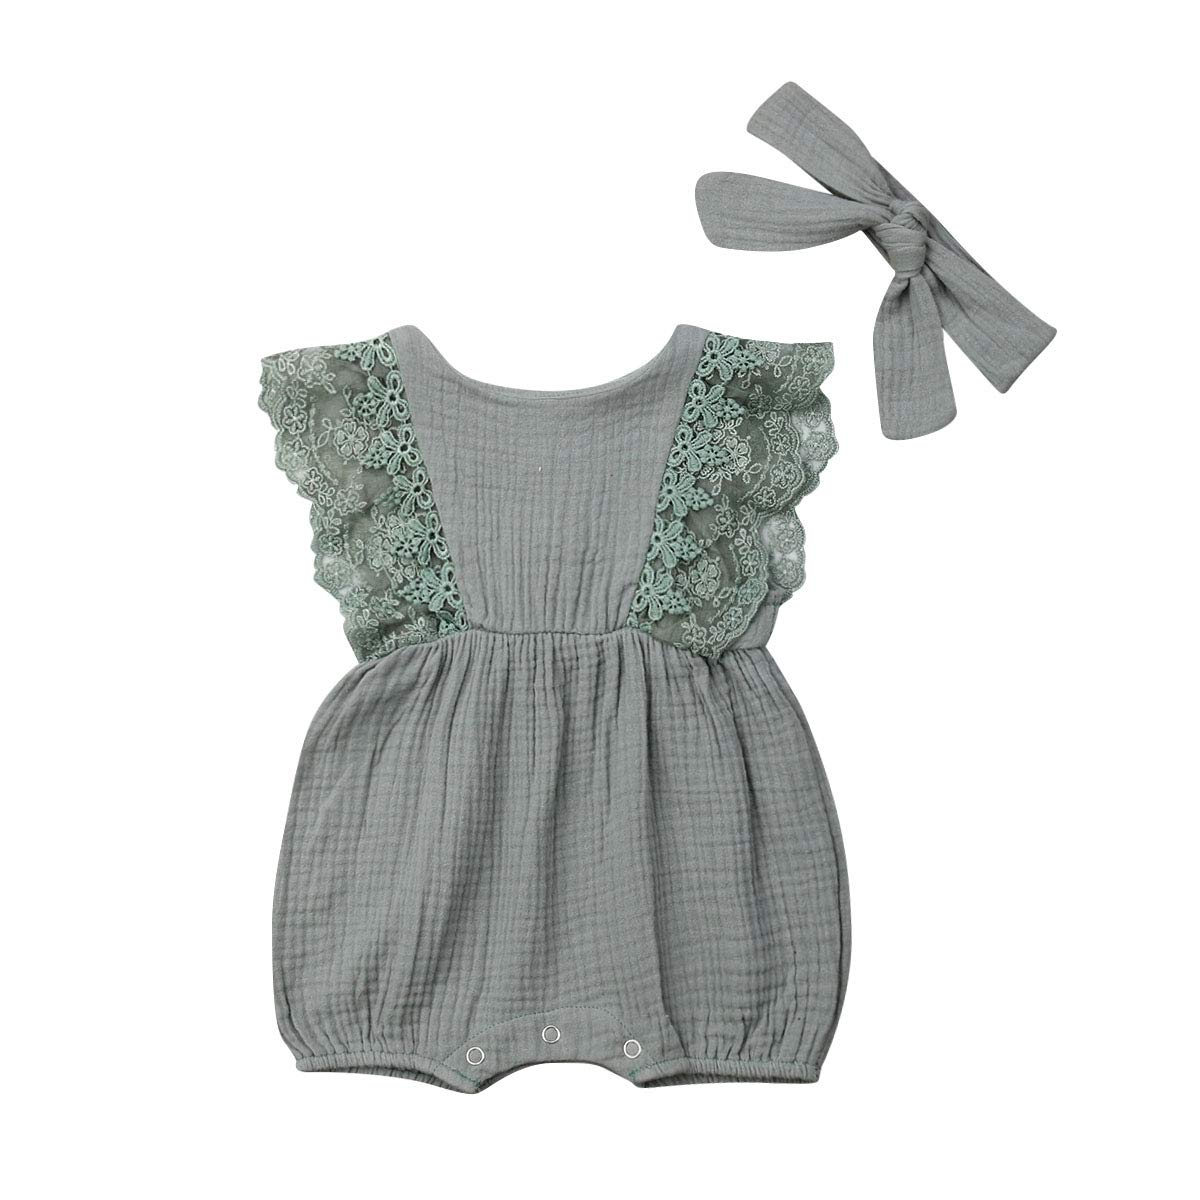 Infant Baby Girls Ruffle Sleeveless Lace Linen Romper Bodysuit Outfit Onesie Jumpsuit with Headband Summer Sunsuit Set